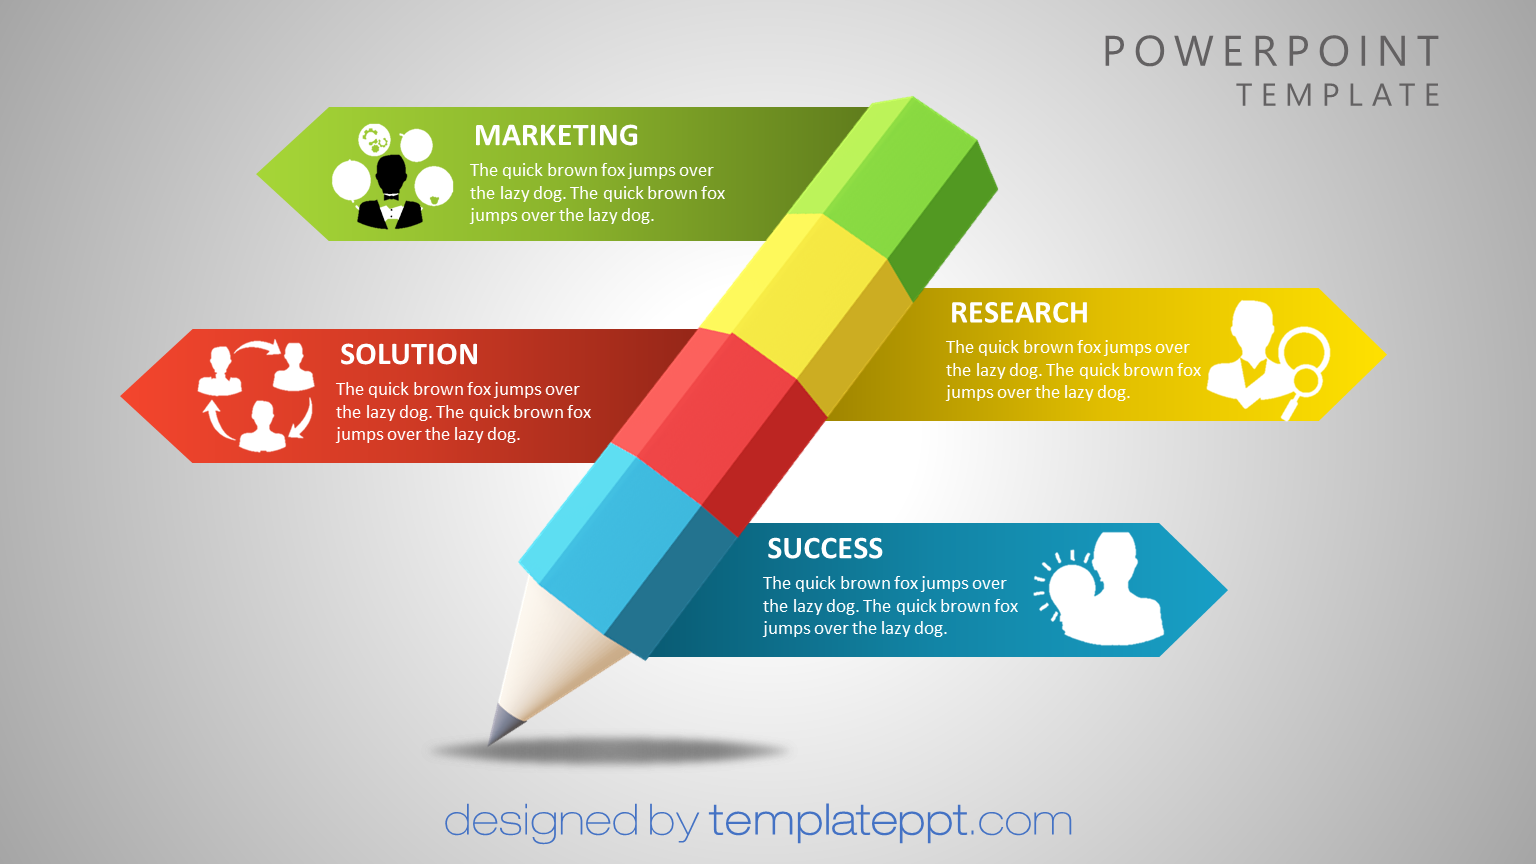 free powerpoint templates - 3d animated powerpoint templates free download using paint